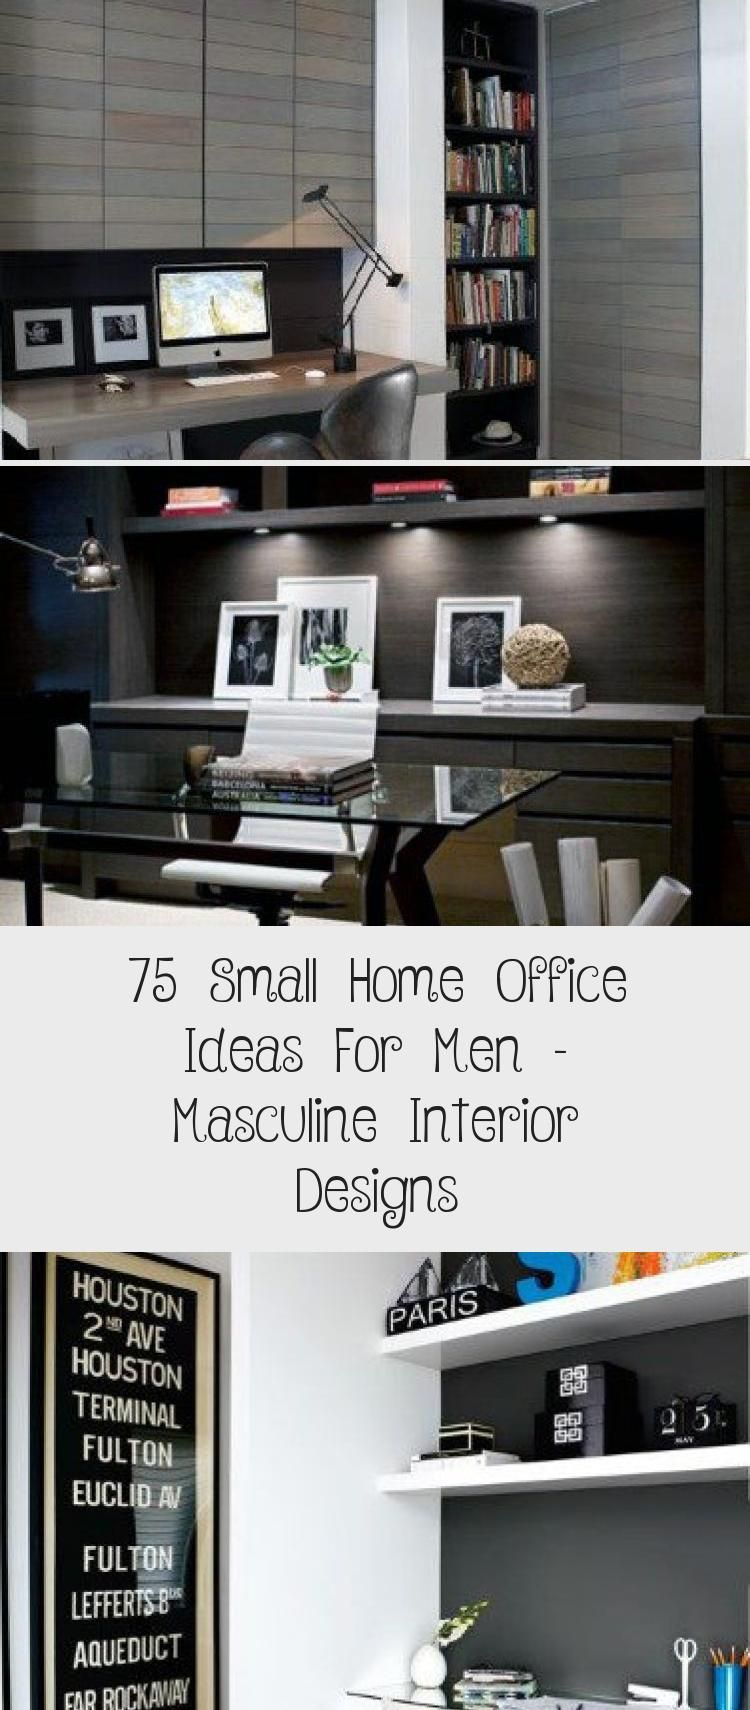 75 Small Home Office Ideas For Men 8211 Masculine Interior Designs Masculine Interior Design Small Home Office Small Home Office Ideas For Men